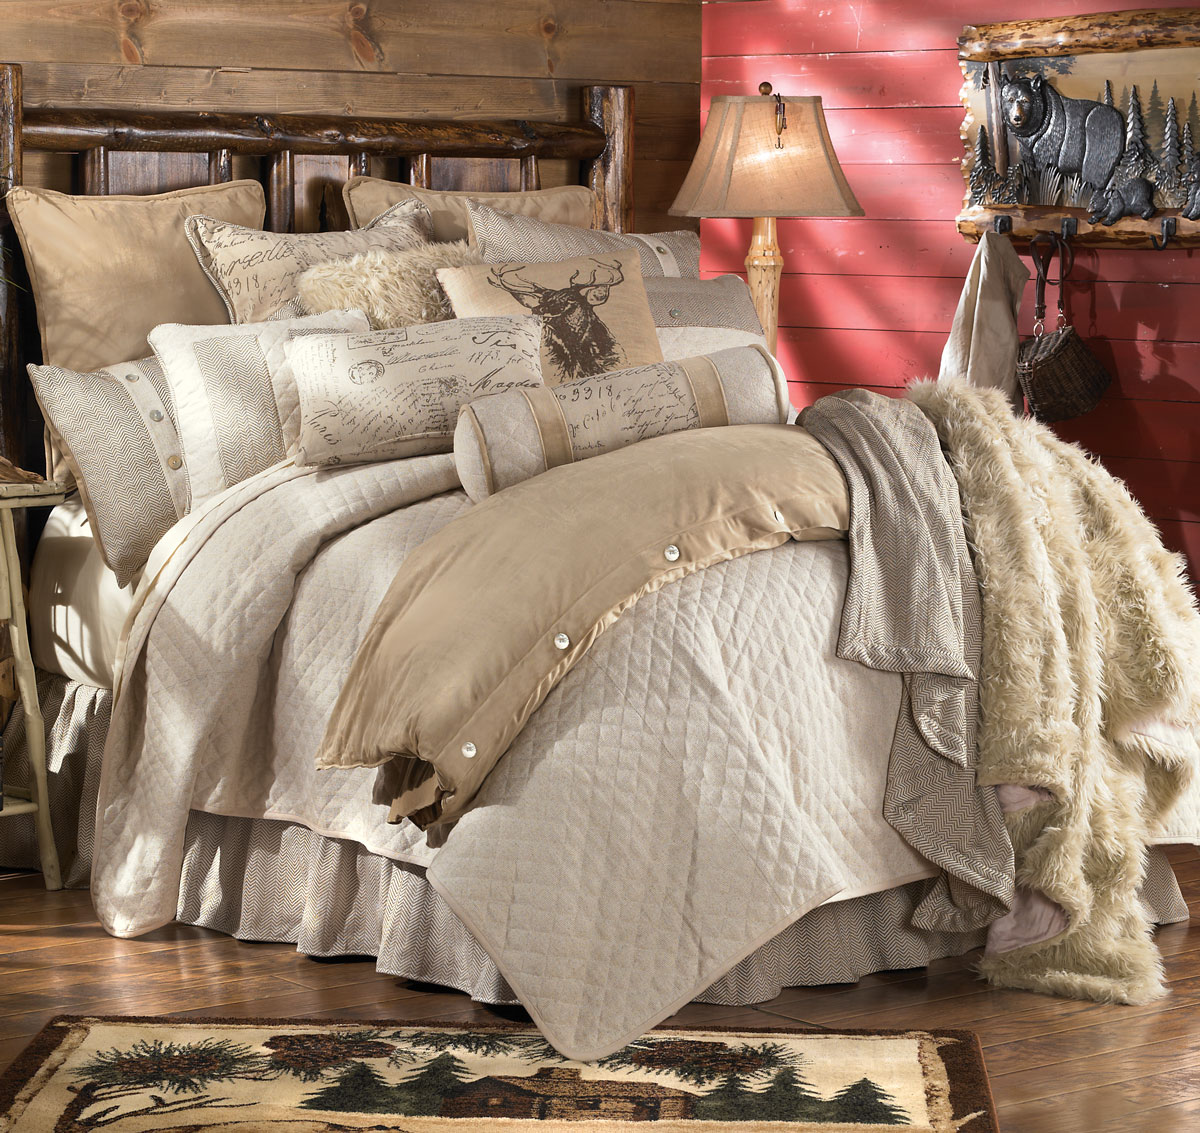 Black Forest Decor Fairfield bed set - king